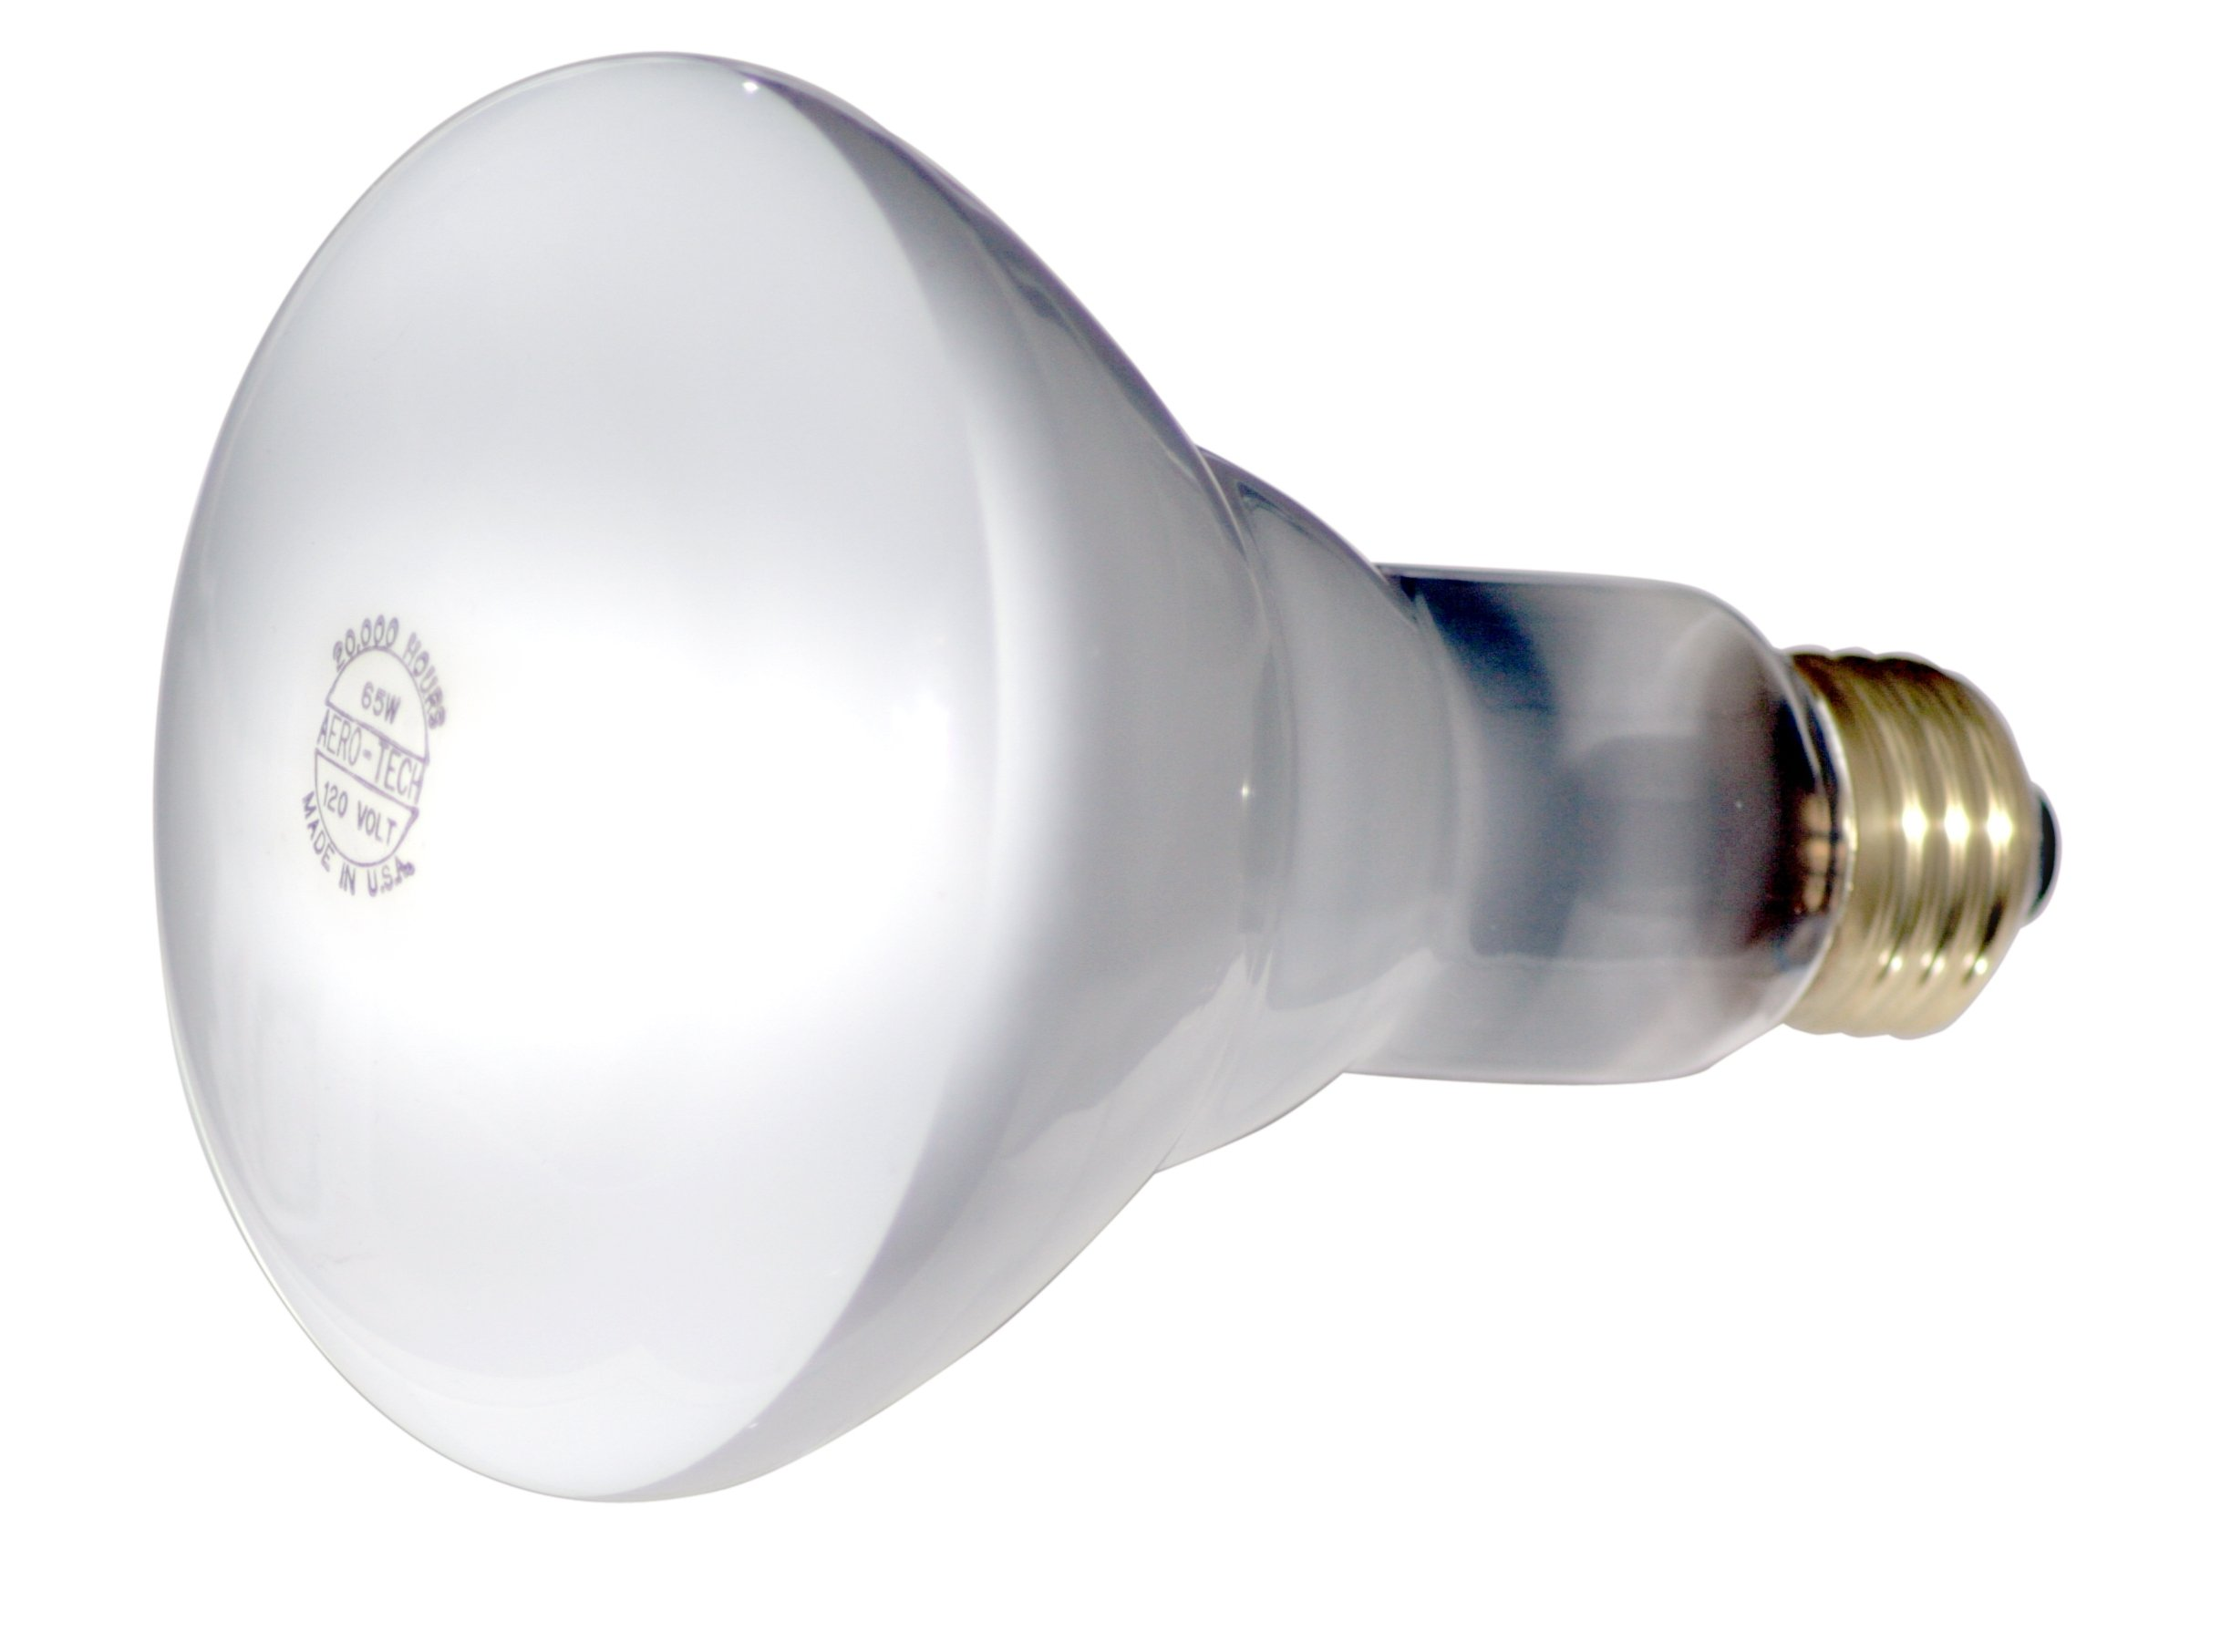 Aero-Tech ULA-22 20,000 Hour 65-Watt BR-30 Indoor Flood Light Bulb by Aero-Tech